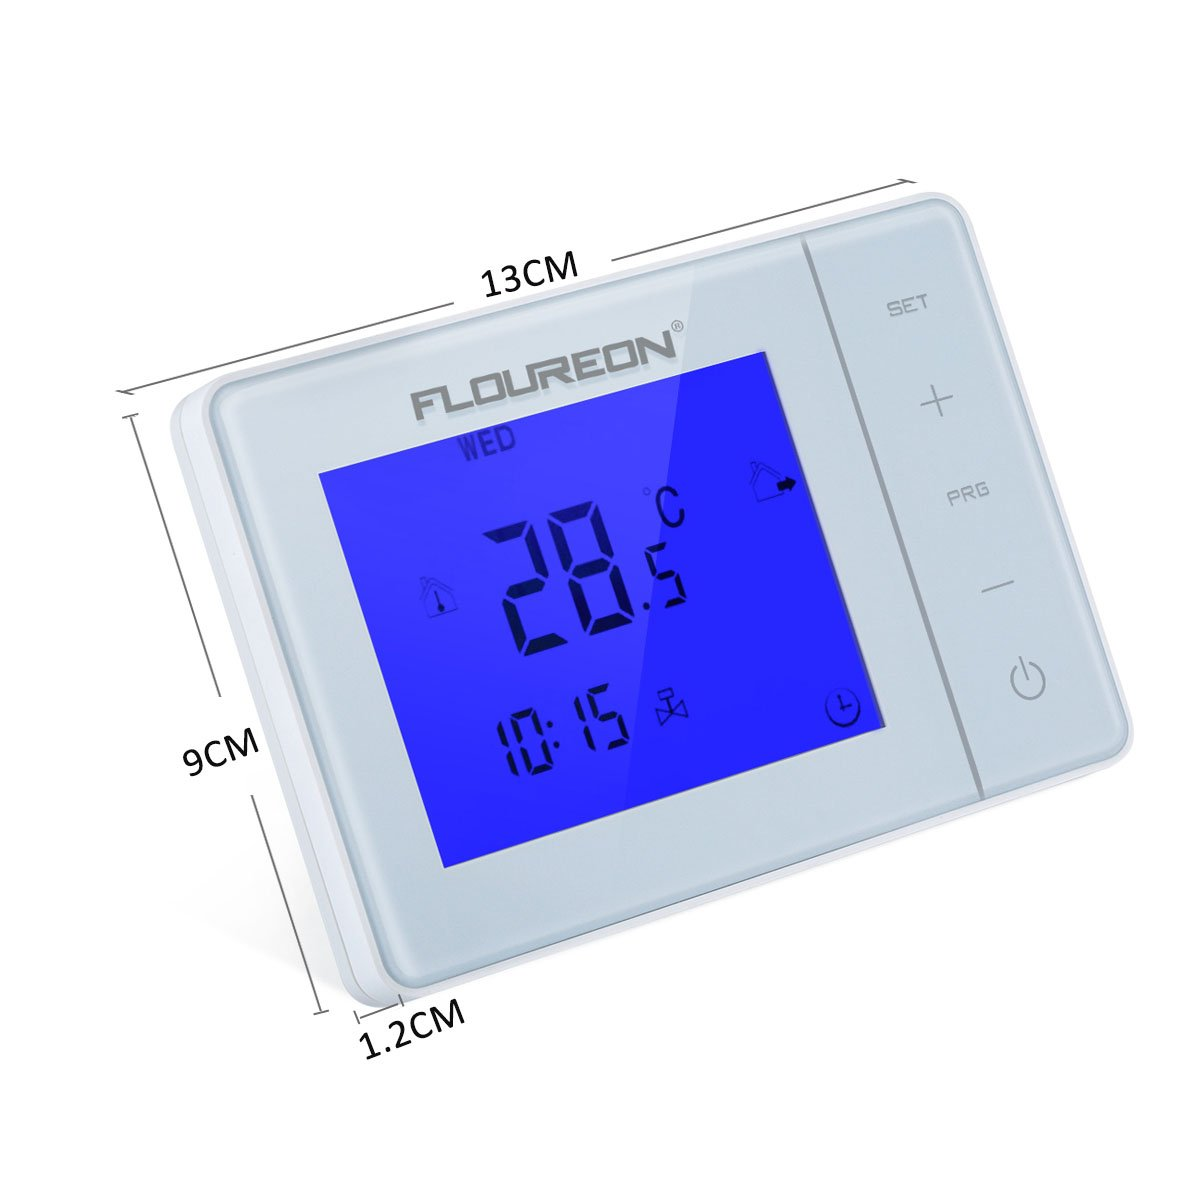 FLOUREON Electric Heating Thermostat With LCD Touchscreen Blue Backlight Display Programmable 5 +2/6 +1/7 Central Heating Thermostat Temperature Controller ...